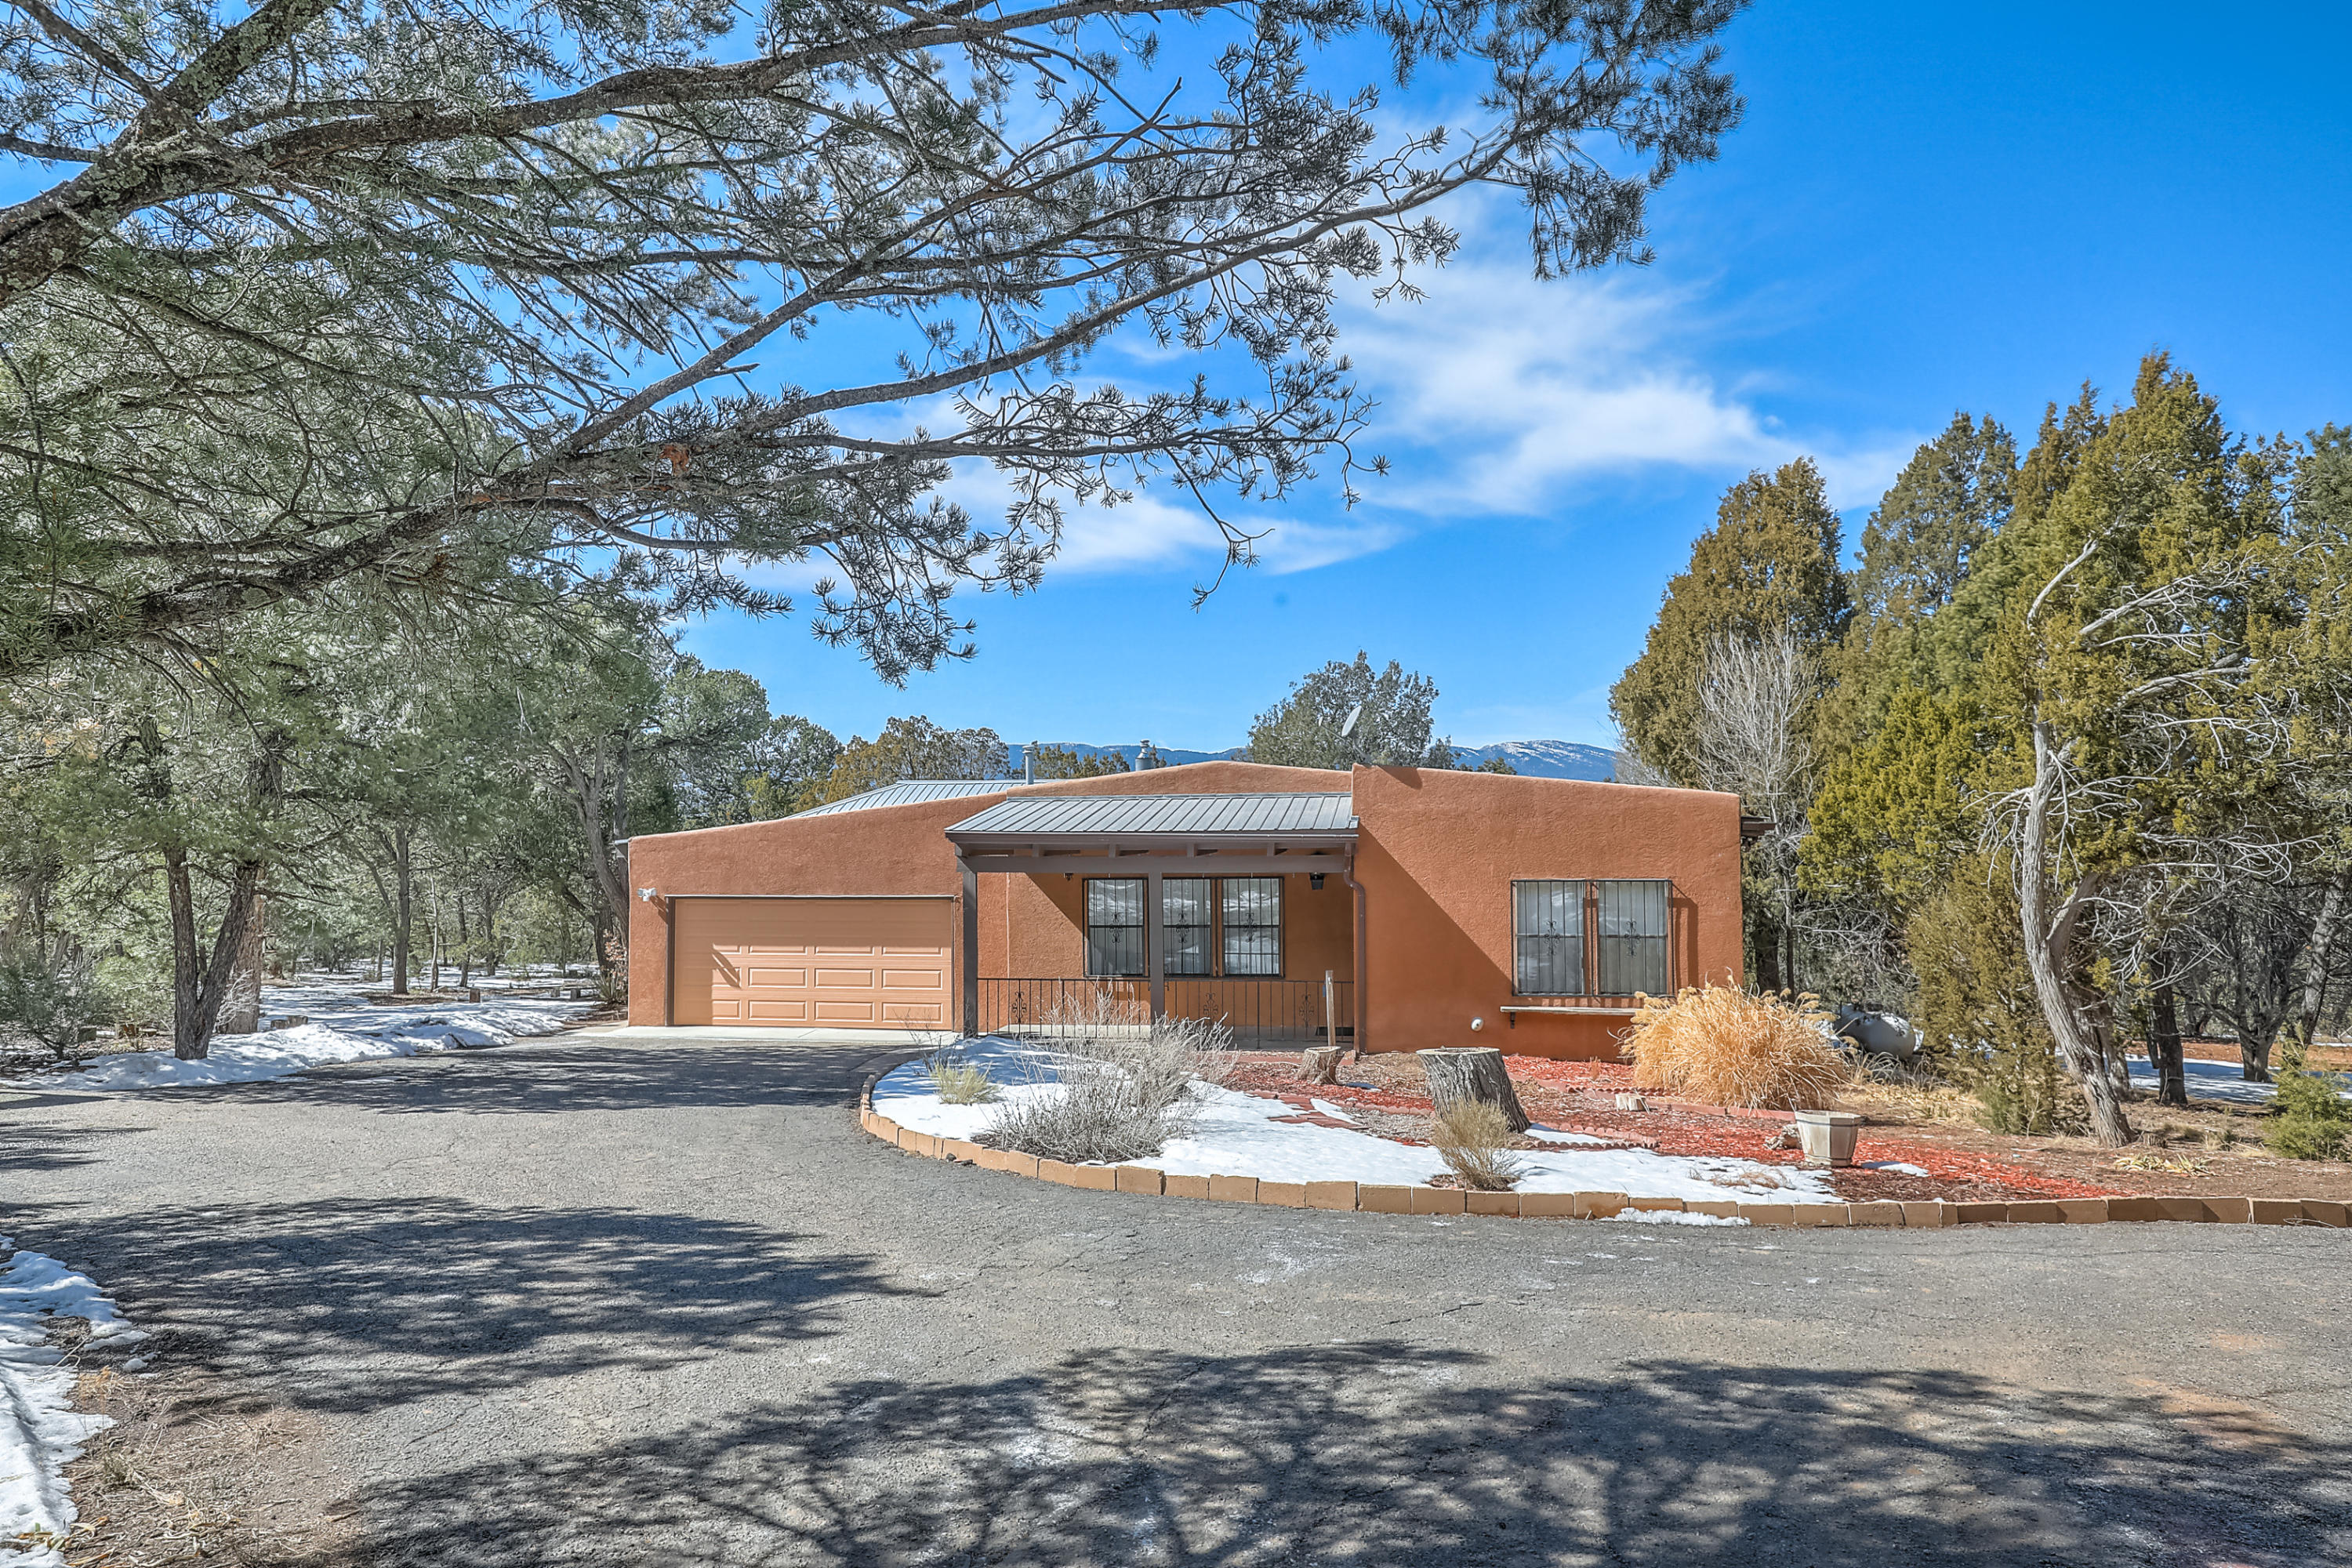 Welcome Home to your own private retreat, nestled in the pinon trees! This lovely 3 bedroom 2.5 bath home, offers a spacious great room with SW accents, beamed ceiling, wet bar and cozy pellet stove. Country Kitchen with island, separate dining room, heated sunroom, office, and large primary suite featuring a full bathroom, walk in closet and beautiful sunroom perfect for a nursery/gym/library. Sitting on 4 beautiful acres, this property also includes a 2 car finished garage and a large workshop/art studio. Fresh interior paint, new septic, newer water heater, and well was drilled deeper a couple of years ago with new pump and wiring installed. This beautiful property is ready for its new owner!